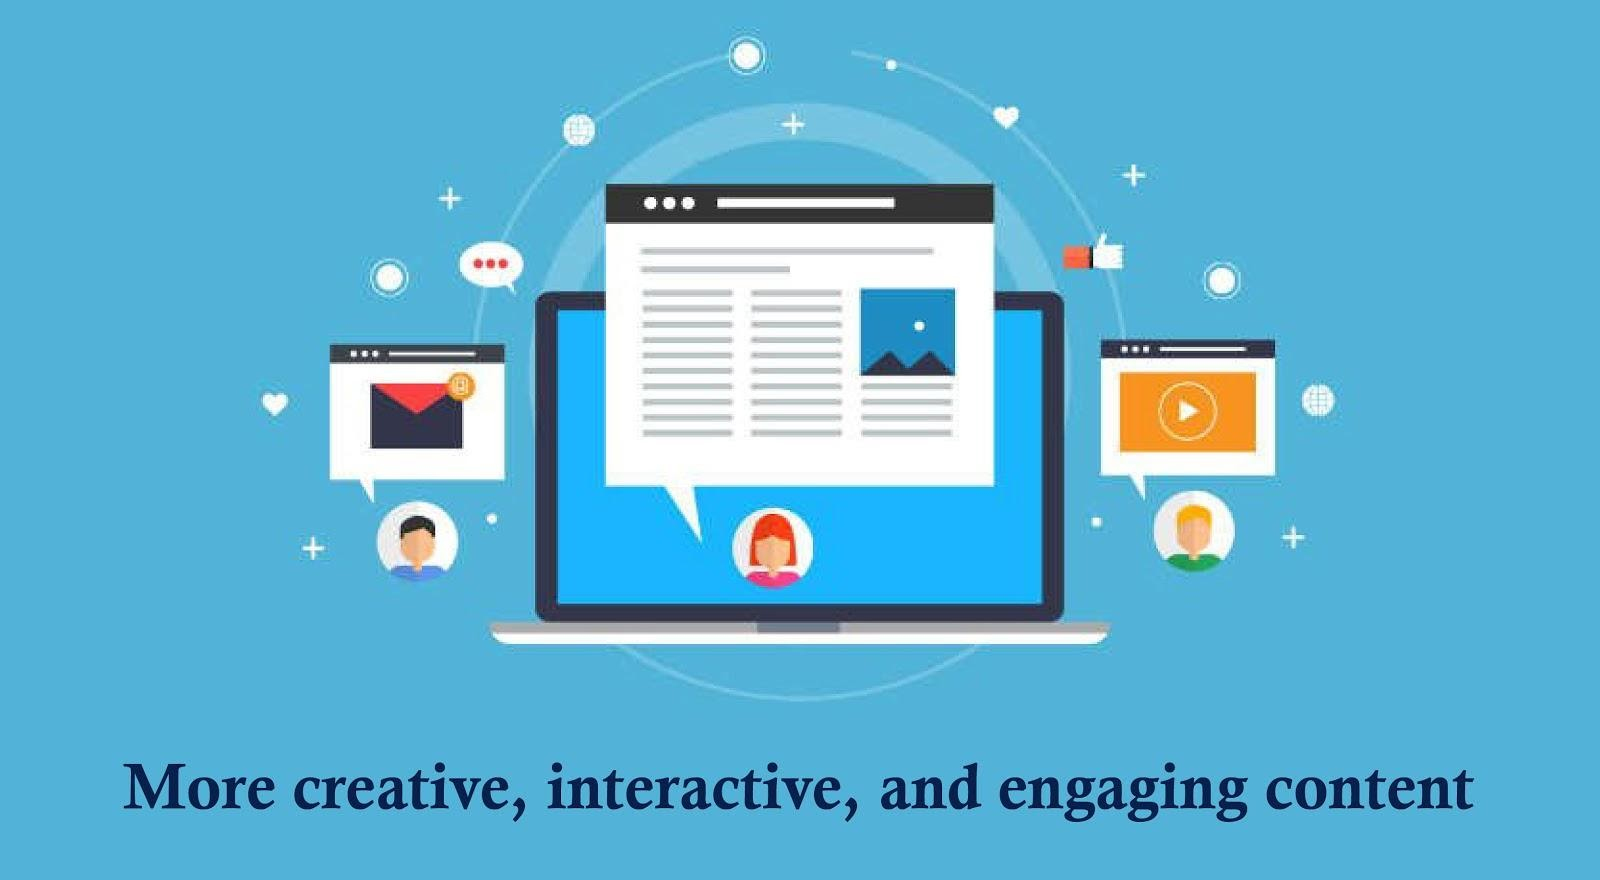 More creative, interactive, and engaging content